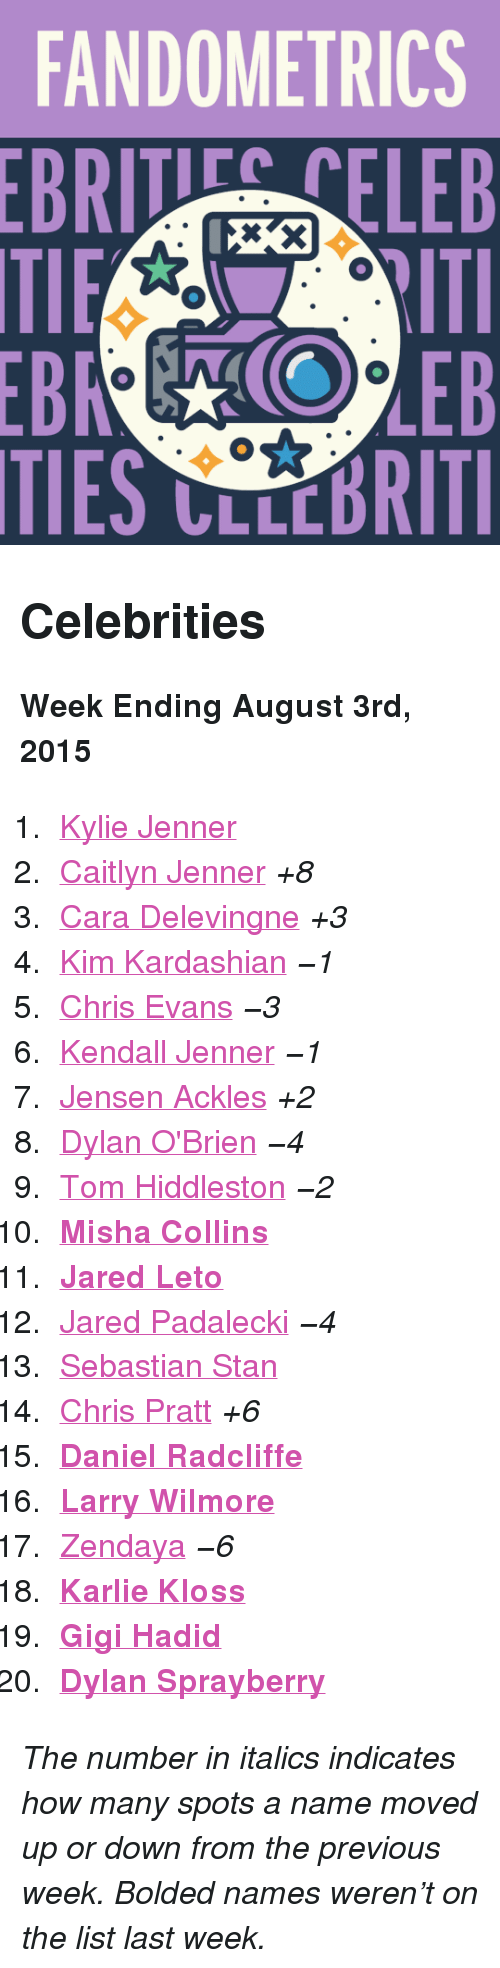 """Dylan O'Brien: FANDOMETRICS  BRTELEB  TIES CLLCBRITI <h2>Celebrities</h2><p><b>Week Ending August 3rd, 2015</b></p><ol><li><a href=""""http://www.tumblr.com/search/kylie%20jenner"""">Kylie Jenner</a></li>  <li><a href=""""http://www.tumblr.com/search/caitlyn%20jenner"""">Caitlyn Jenner</a><i>+8</i></li>  <li><a href=""""http://www.tumblr.com/search/cara%20delevingne"""">Cara Delevingne</a><i>+3</i></li>  <li><a href=""""http://www.tumblr.com/search/kim%20kardashian"""">Kim Kardashian</a><i>−1</i></li>  <li><a href=""""http://www.tumblr.com/search/chris%20evans"""">Chris Evans</a><i>−3</i></li>  <li><a href=""""http://www.tumblr.com/search/kendall%20jenner"""">Kendall Jenner</a><i>−1</i></li>  <li><a href=""""http://www.tumblr.com/search/jensen%20ackles"""">Jensen Ackles</a><i>+2</i></li>  <li><a href=""""http://www.tumblr.com/search/dylan%20o'brien"""">Dylan O'Brien</a><i>−4</i></li>  <li><a href=""""http://www.tumblr.com/search/tom%20hiddleston"""">Tom Hiddleston</a><i>−2</i></li>  <li><a href=""""http://www.tumblr.com/search/misha%20collins""""><b>Misha Collins</b></a></li>  <li><a href=""""http://www.tumblr.com/search/jared%20leto""""><b>Jared Leto</b></a></li>  <li><a href=""""http://www.tumblr.com/search/jared%20padalecki"""">Jared Padalecki</a><i>−4</i></li>  <li><a href=""""http://www.tumblr.com/search/sebastian%20stan"""">Sebastian Stan</a></li>  <li><a href=""""http://www.tumblr.com/search/chris%20pratt"""">Chris Pratt</a><i>+6</i></li>  <li><a href=""""http://www.tumblr.com/search/daniel%20radcliffe""""><b>Daniel Radcliffe</b></a></li>  <li><a href=""""http://www.tumblr.com/search/larry%20wilmore""""><b>Larry Wilmore</b></a></li>  <li><a href=""""http://www.tumblr.com/search/zendaya"""">Zendaya</a><i>−6</i></li>  <li><b><a href=""""http://www.tumblr.com/search/karlie%20kloss"""">Karlie Kloss</a></b></li>  <li><a href=""""http://www.tumblr.com/search/gigi%20hadid""""><b>Gigi Hadid</b></a></li>  <li><b><a href=""""http://www.tumblr.com/search/dylan%20sprayberry"""">Dylan Sprayberry</a></b></li></ol><p><i>The number in italics indicates how many spots a name moved up or down f"""